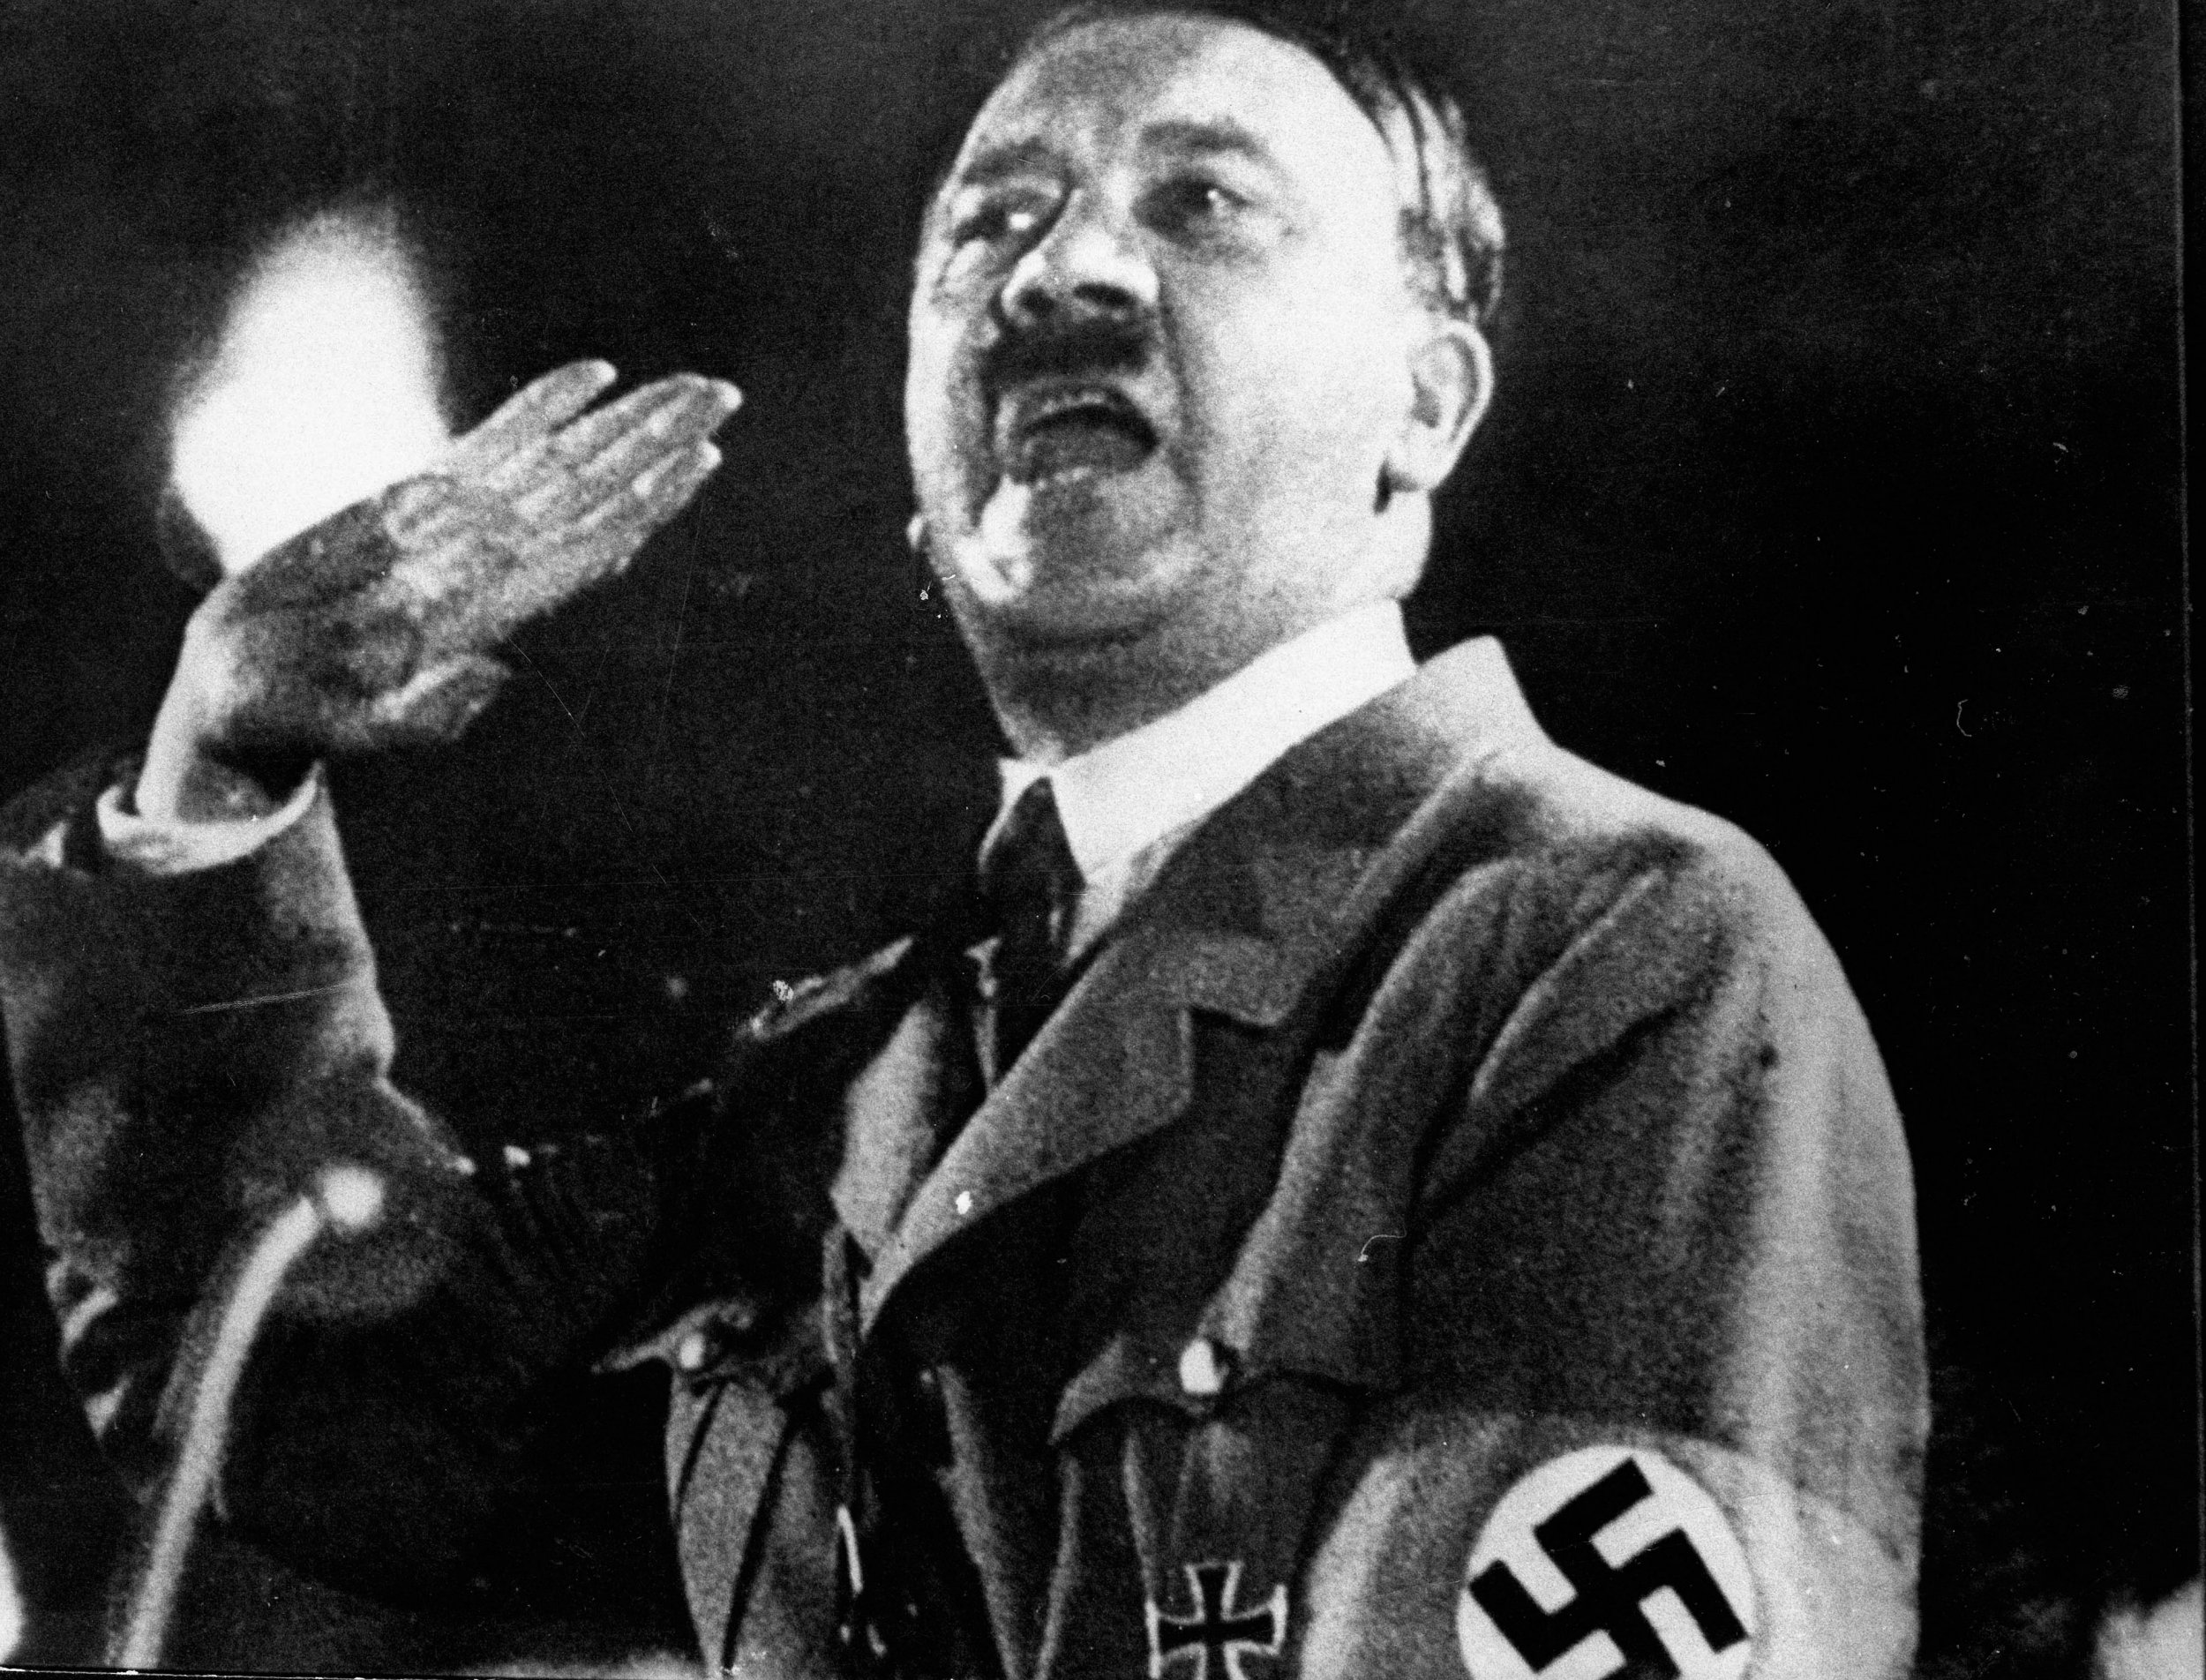 Adolf Hitler dictating shortly before committing suicide.